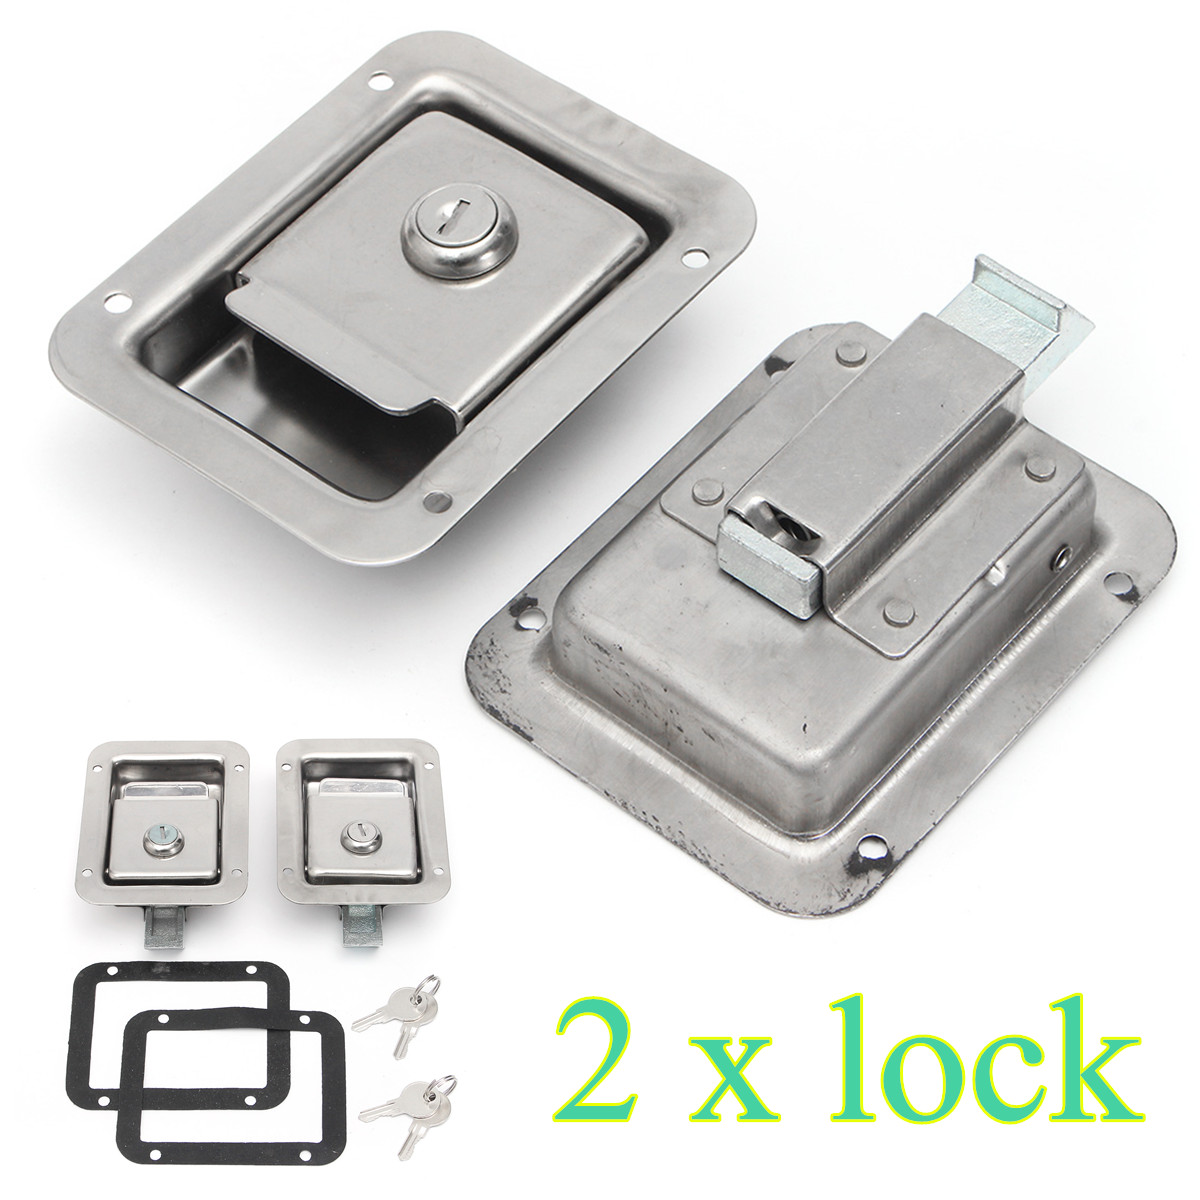 Stainless Steel Paddle Door Lock Latch Handle Truck Tool Box Trailer With Key 2Pcs/set 3pcs mini stainless steel garden tool set with soild wood handle